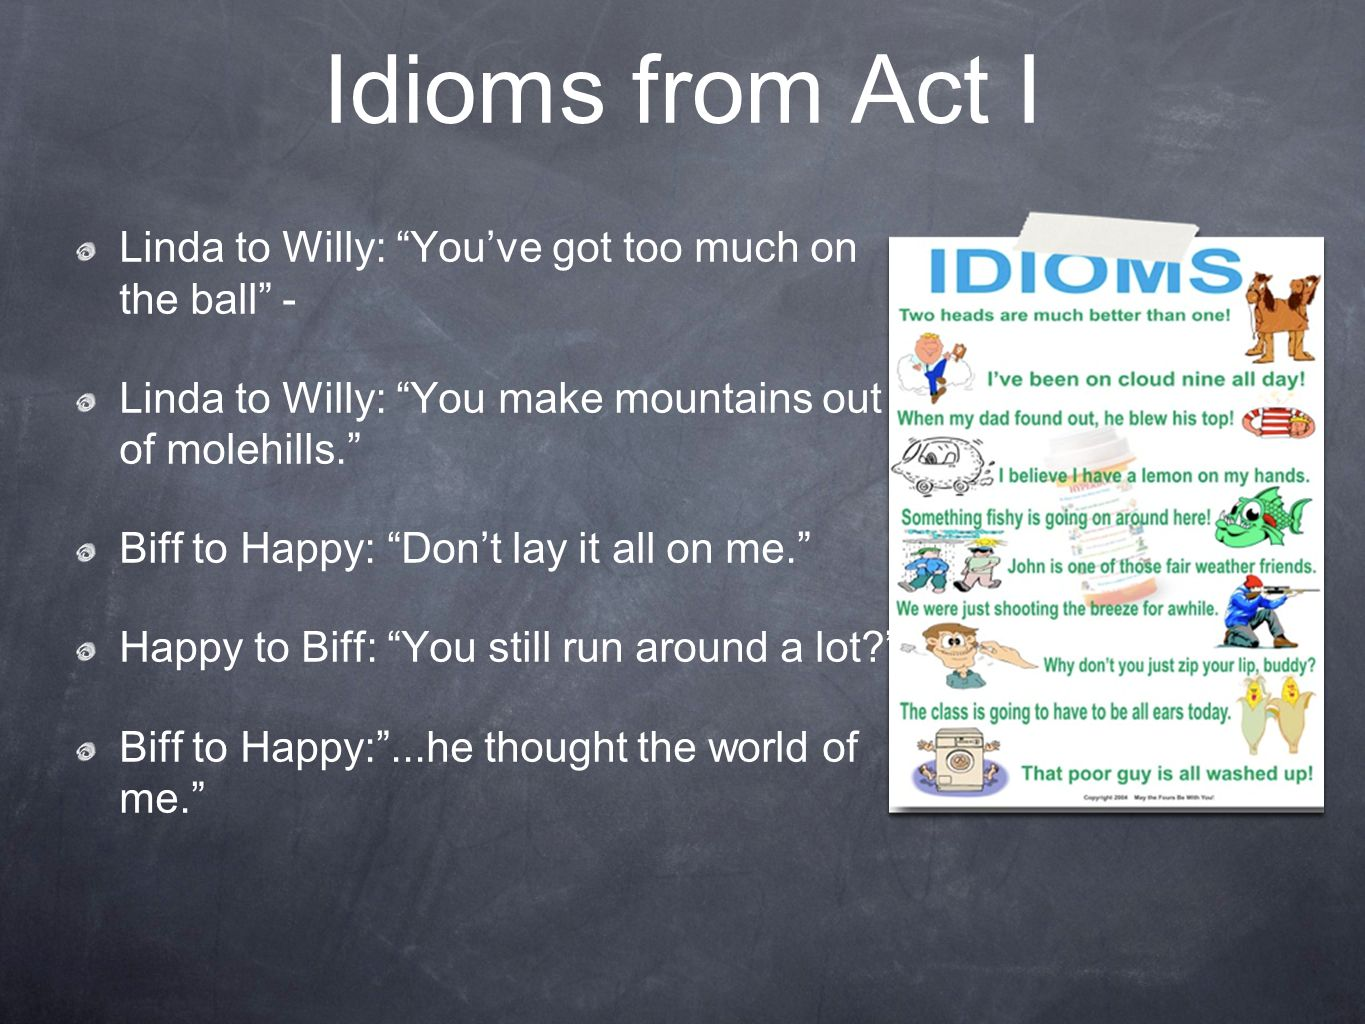 Idioms from Act I Linda to Willy: Youve got too much on the ball - Linda to Willy: You make mountains out of molehills. Biff to Happy: Dont lay it all